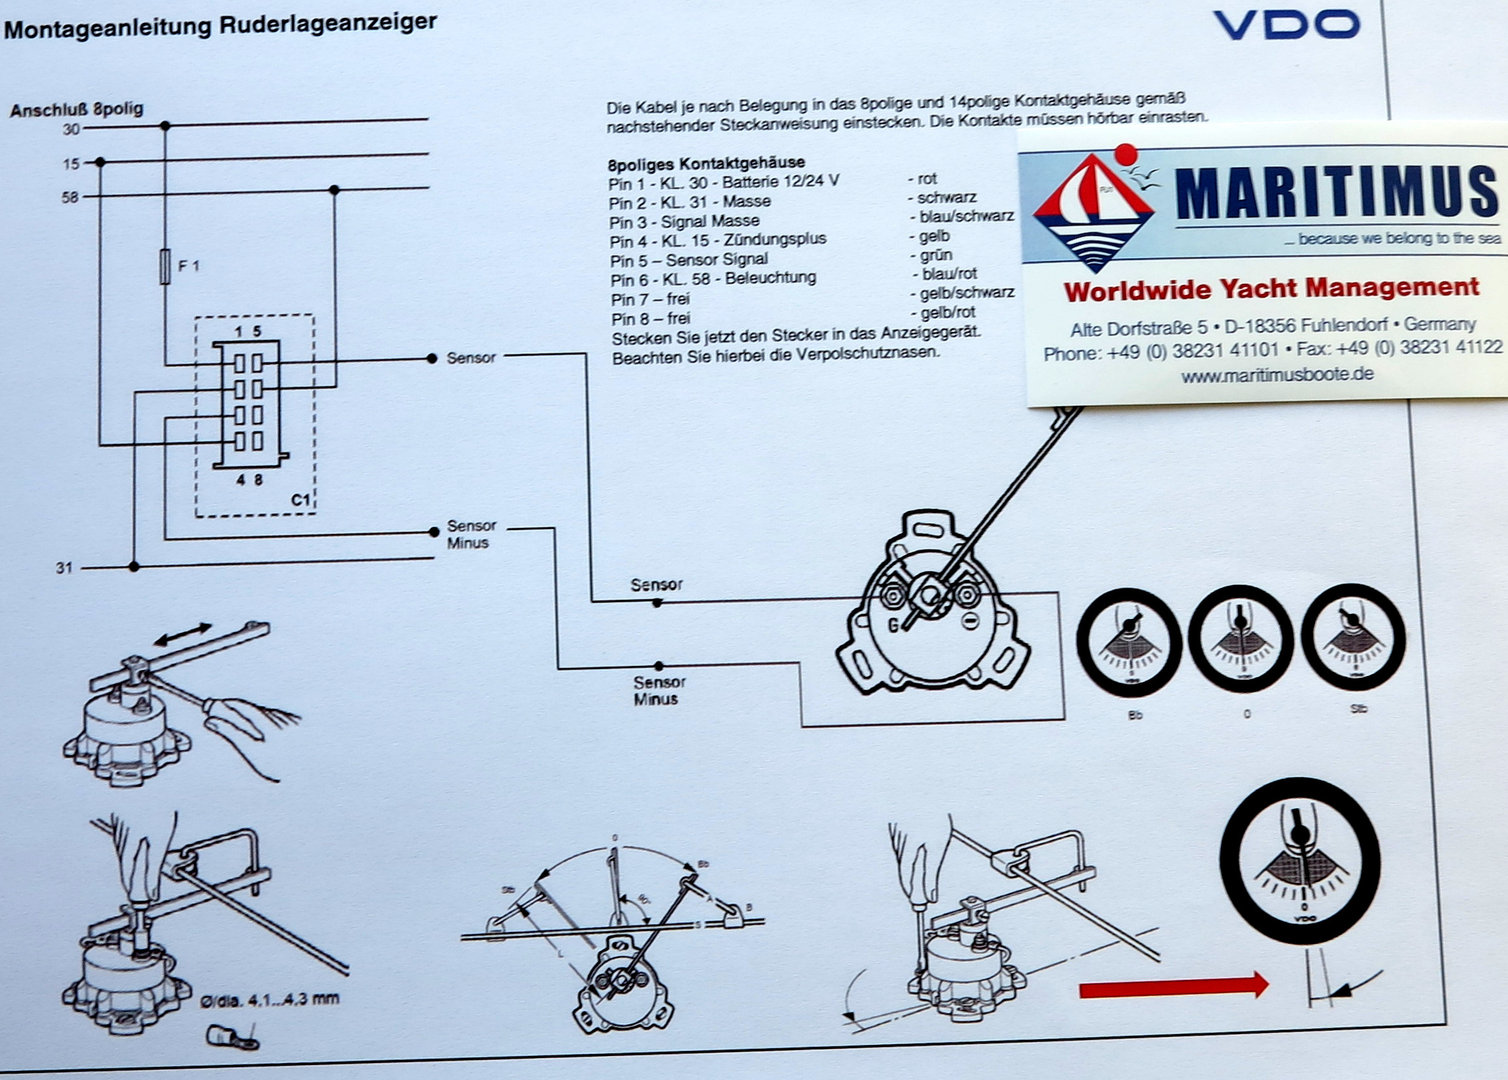 Maritimus_VDO_Viewline_Ruderlagenanzeiger_7 vdo rudder angle indicator viewline 85mm, fully ad, fasteners vdo hour meter viewline wiring diagram at panicattacktreatment.co